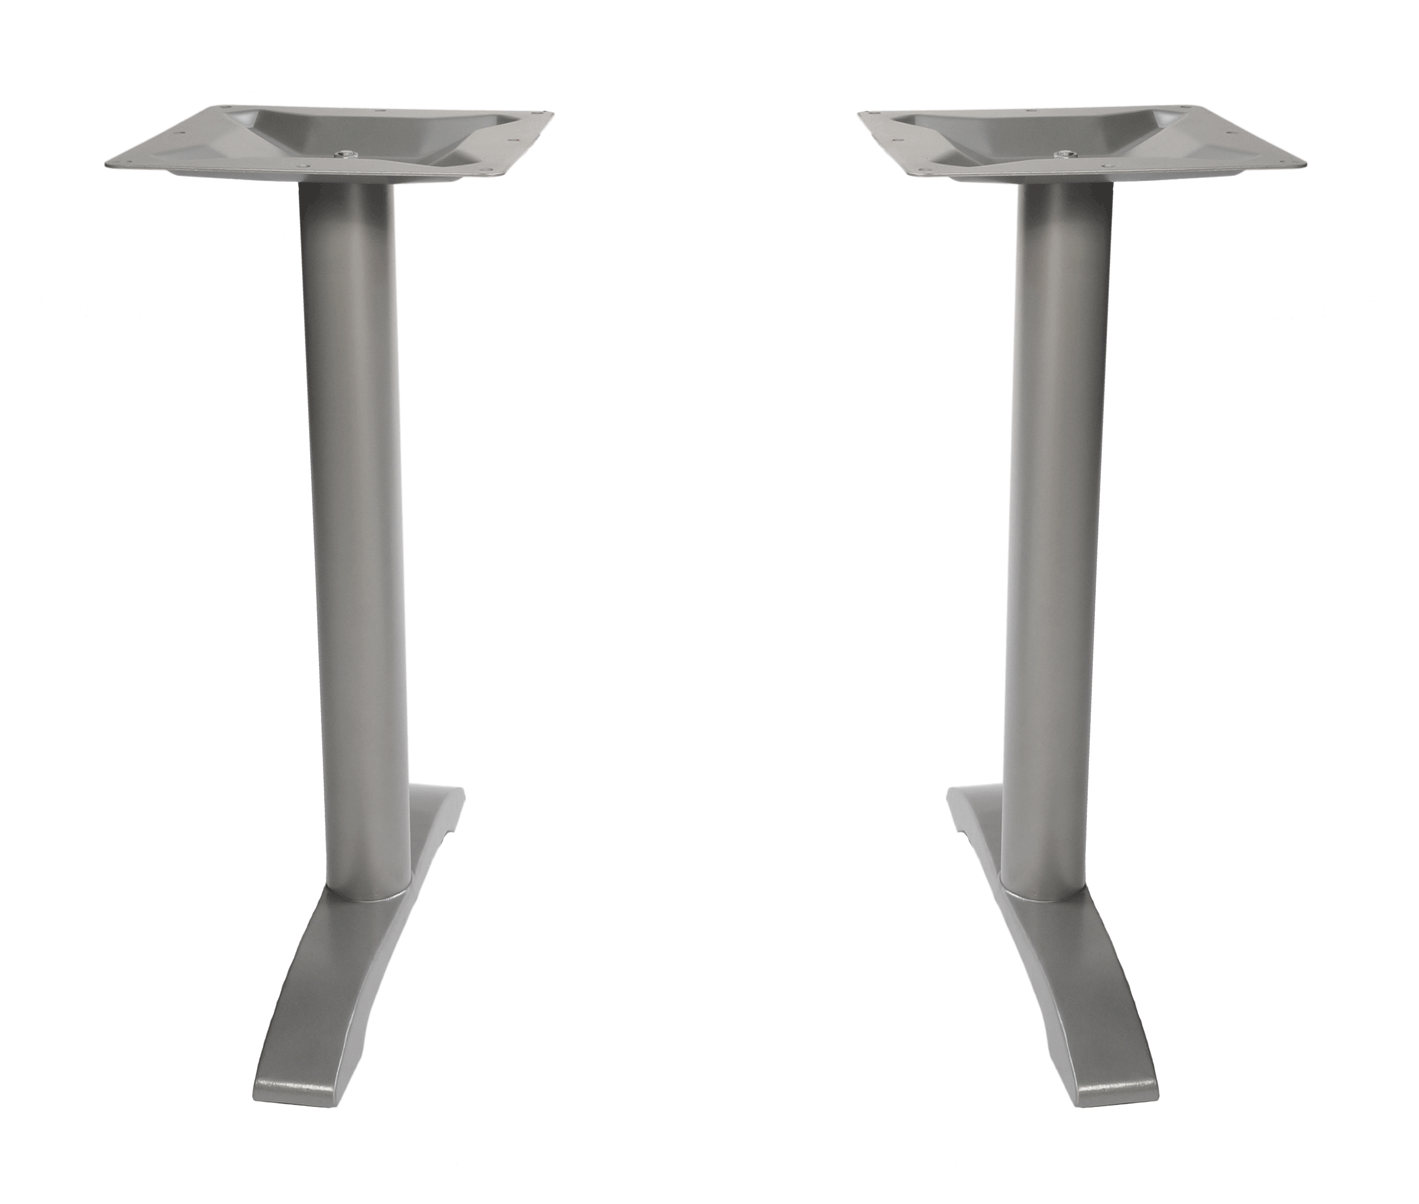 Cast iron steel commercial bar height table end bases for Cast iron table ends